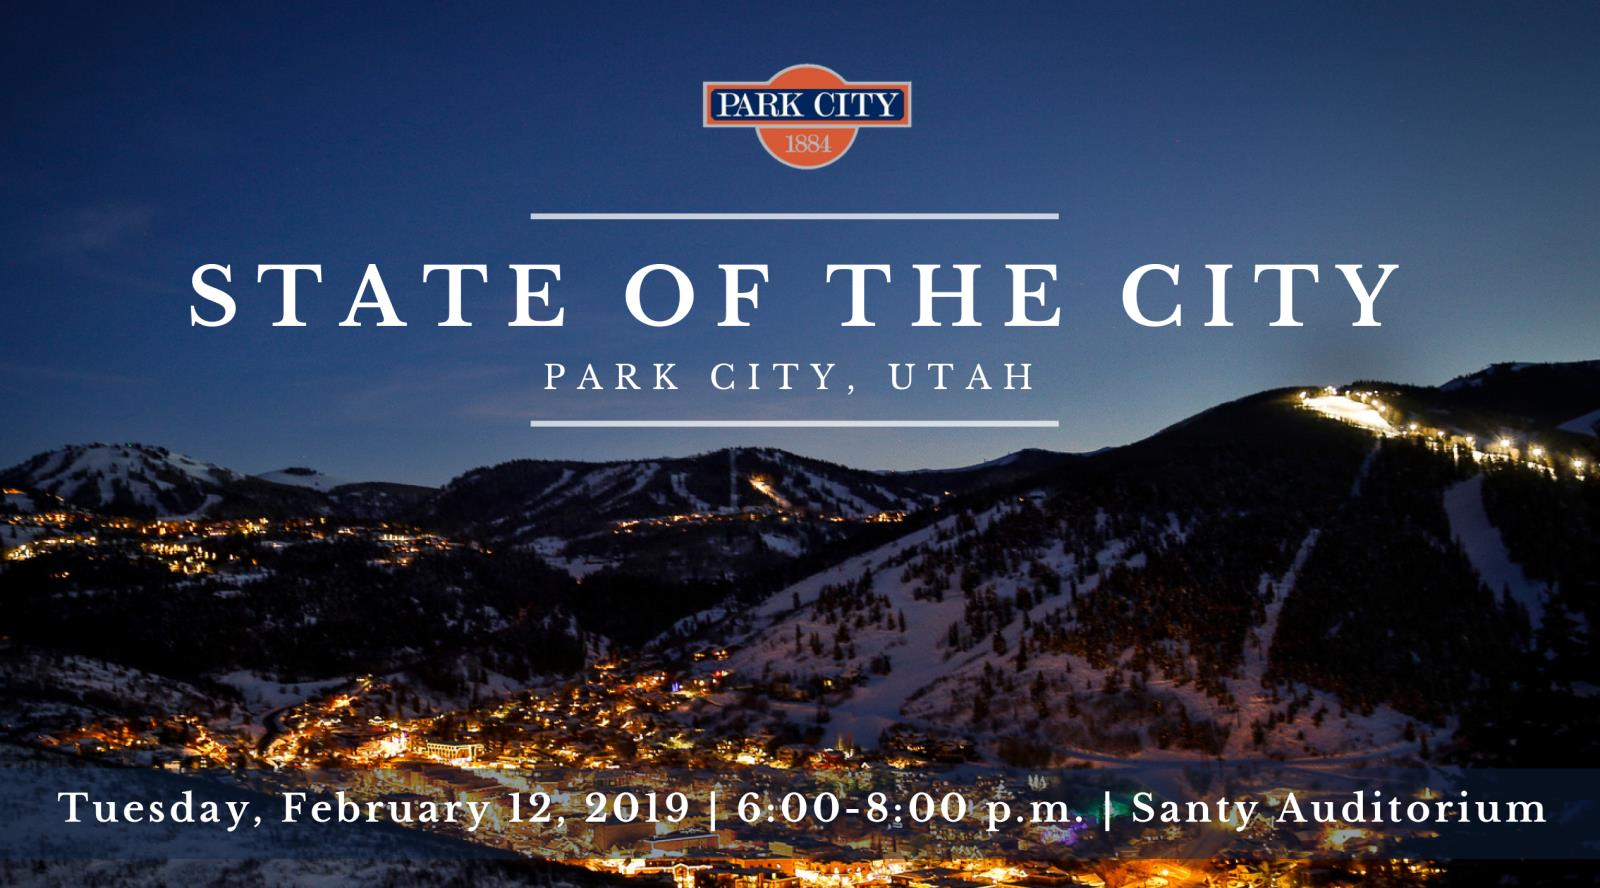 STATE OF THE CITY 2019 INVITE_v2